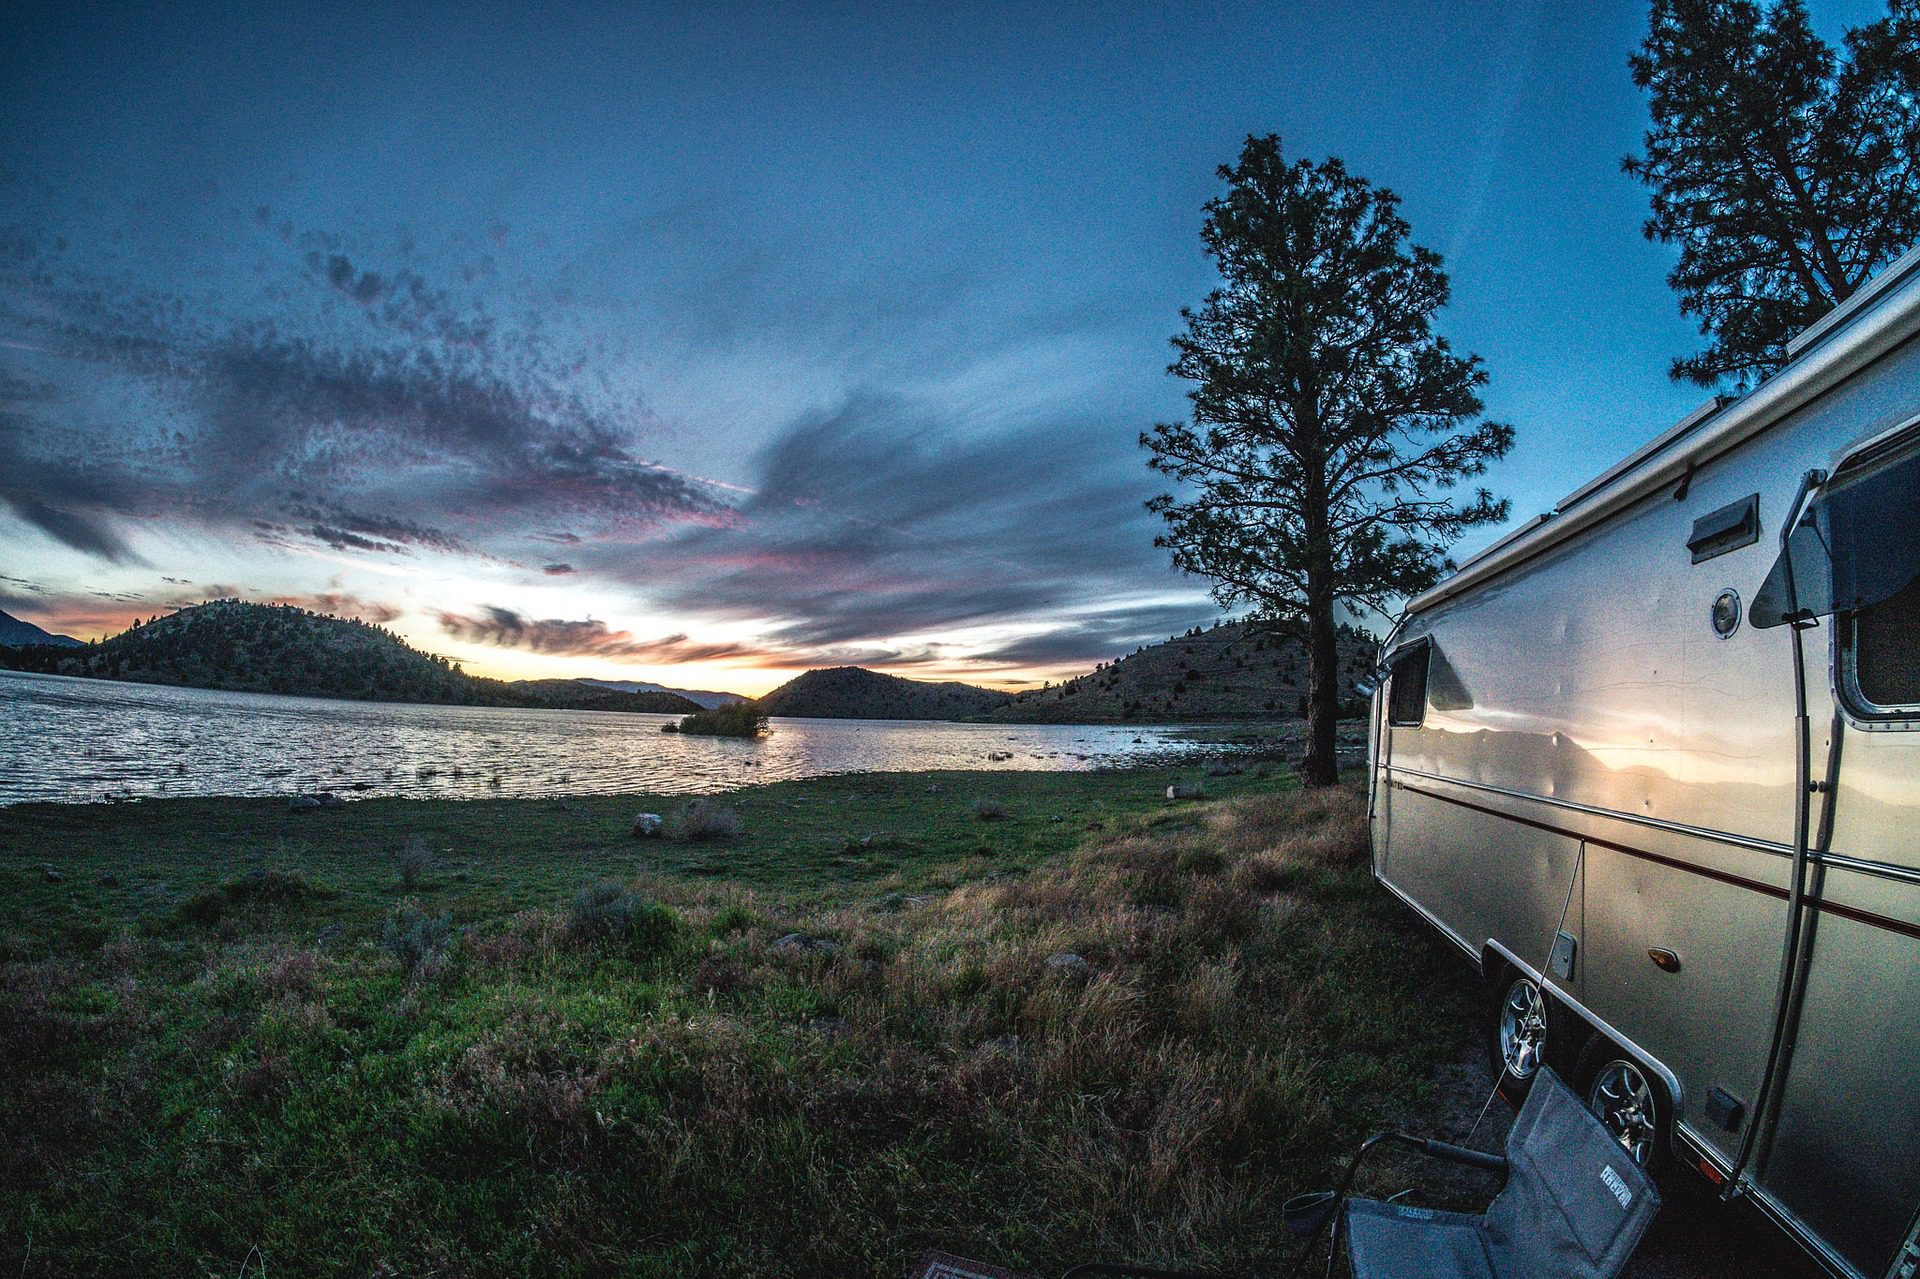 Downsize Your Home and Travel the US in an RV!